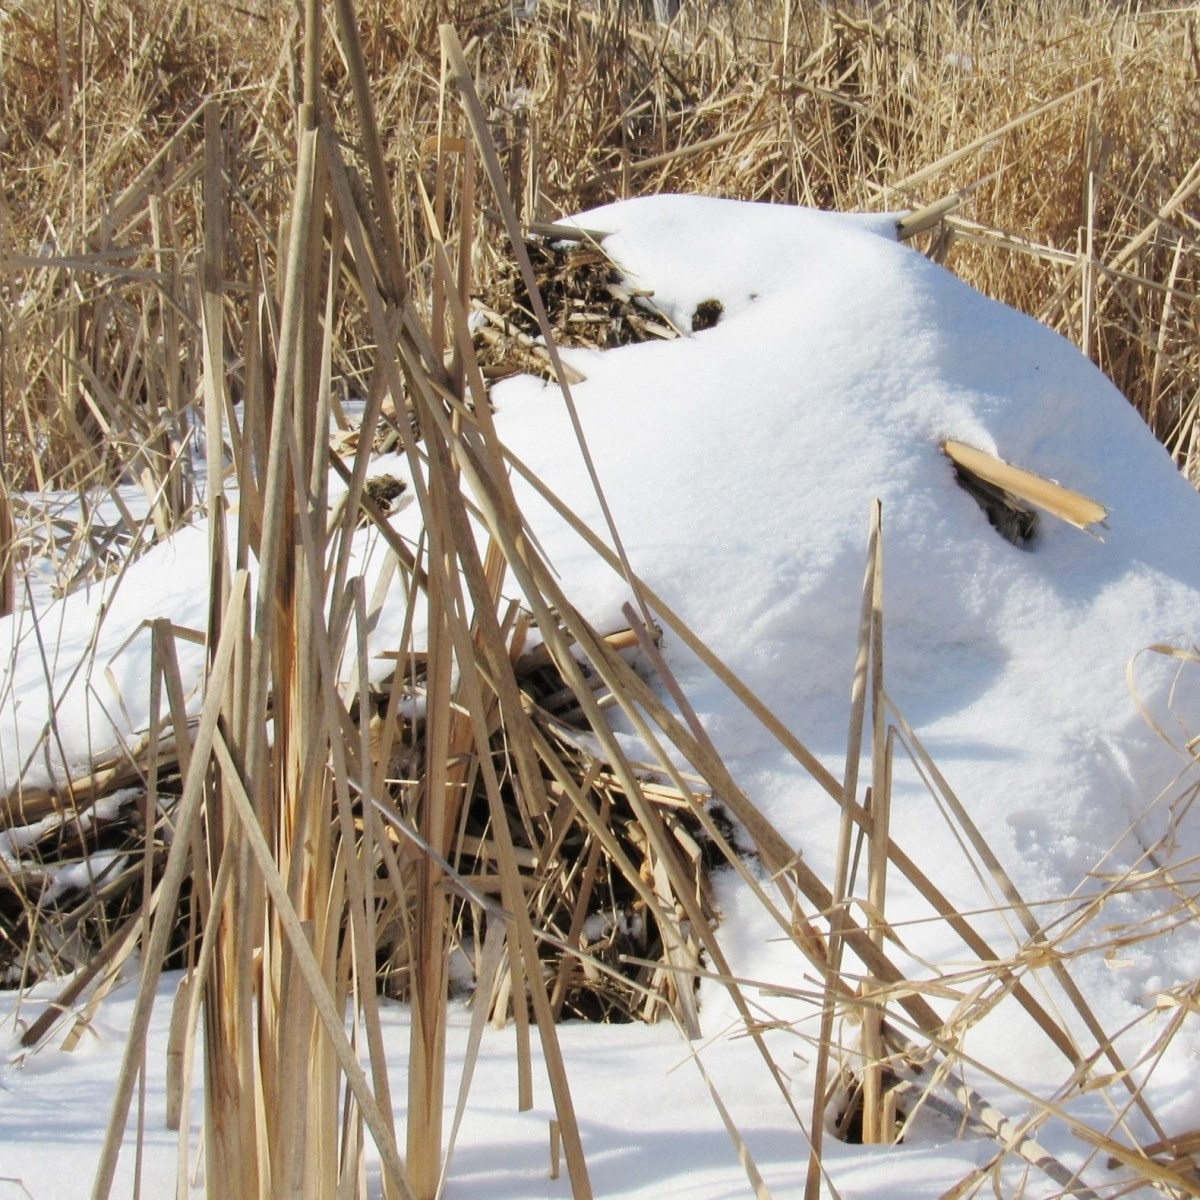 A snow-covered muskrat lodge